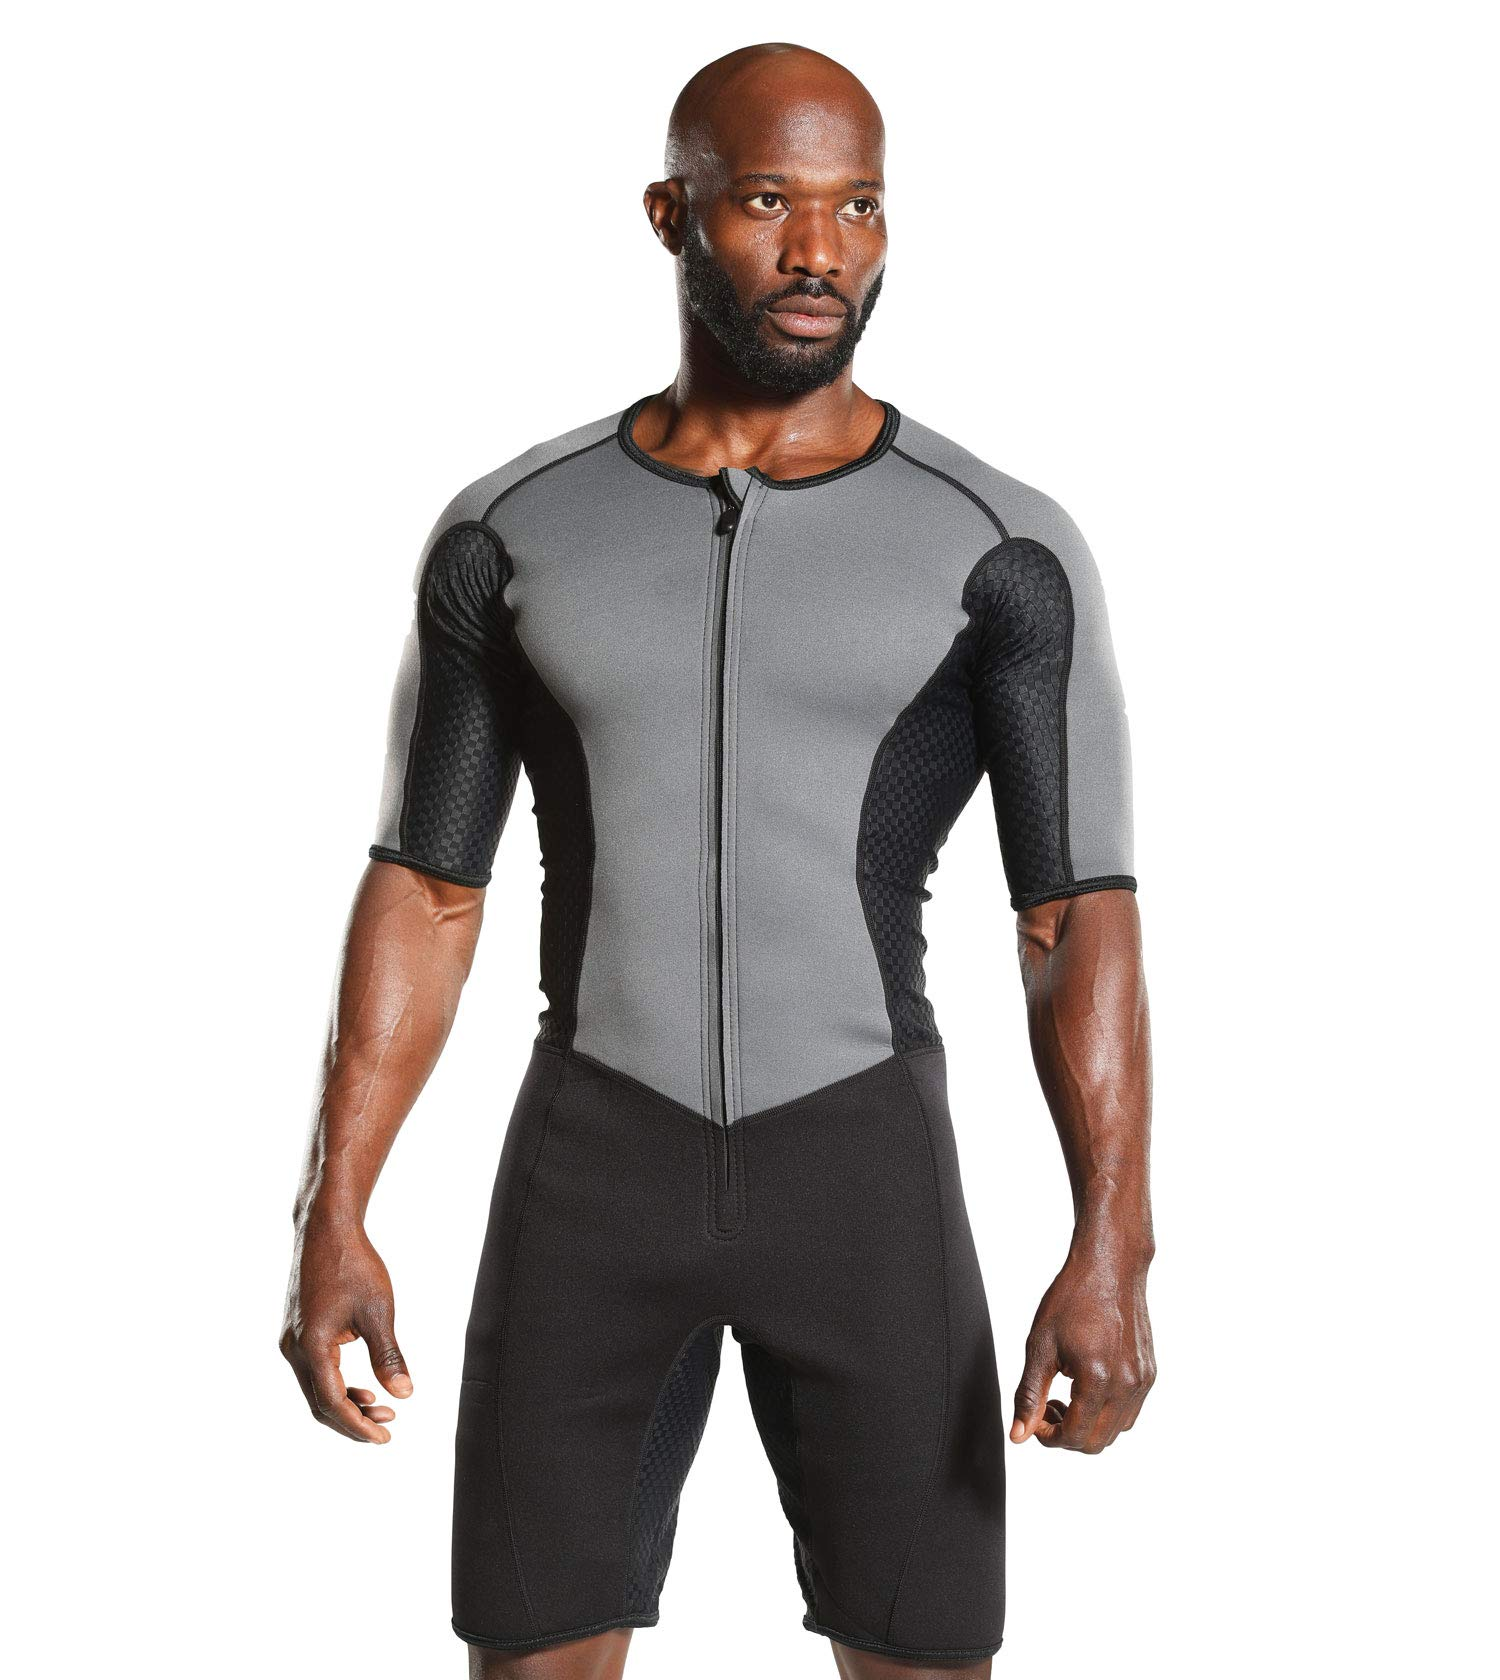 Kutting Weight Sauna Suit - Body Toning Clothing - Fat Burner Short Sleeve Sauna Suit by Kutting Weight